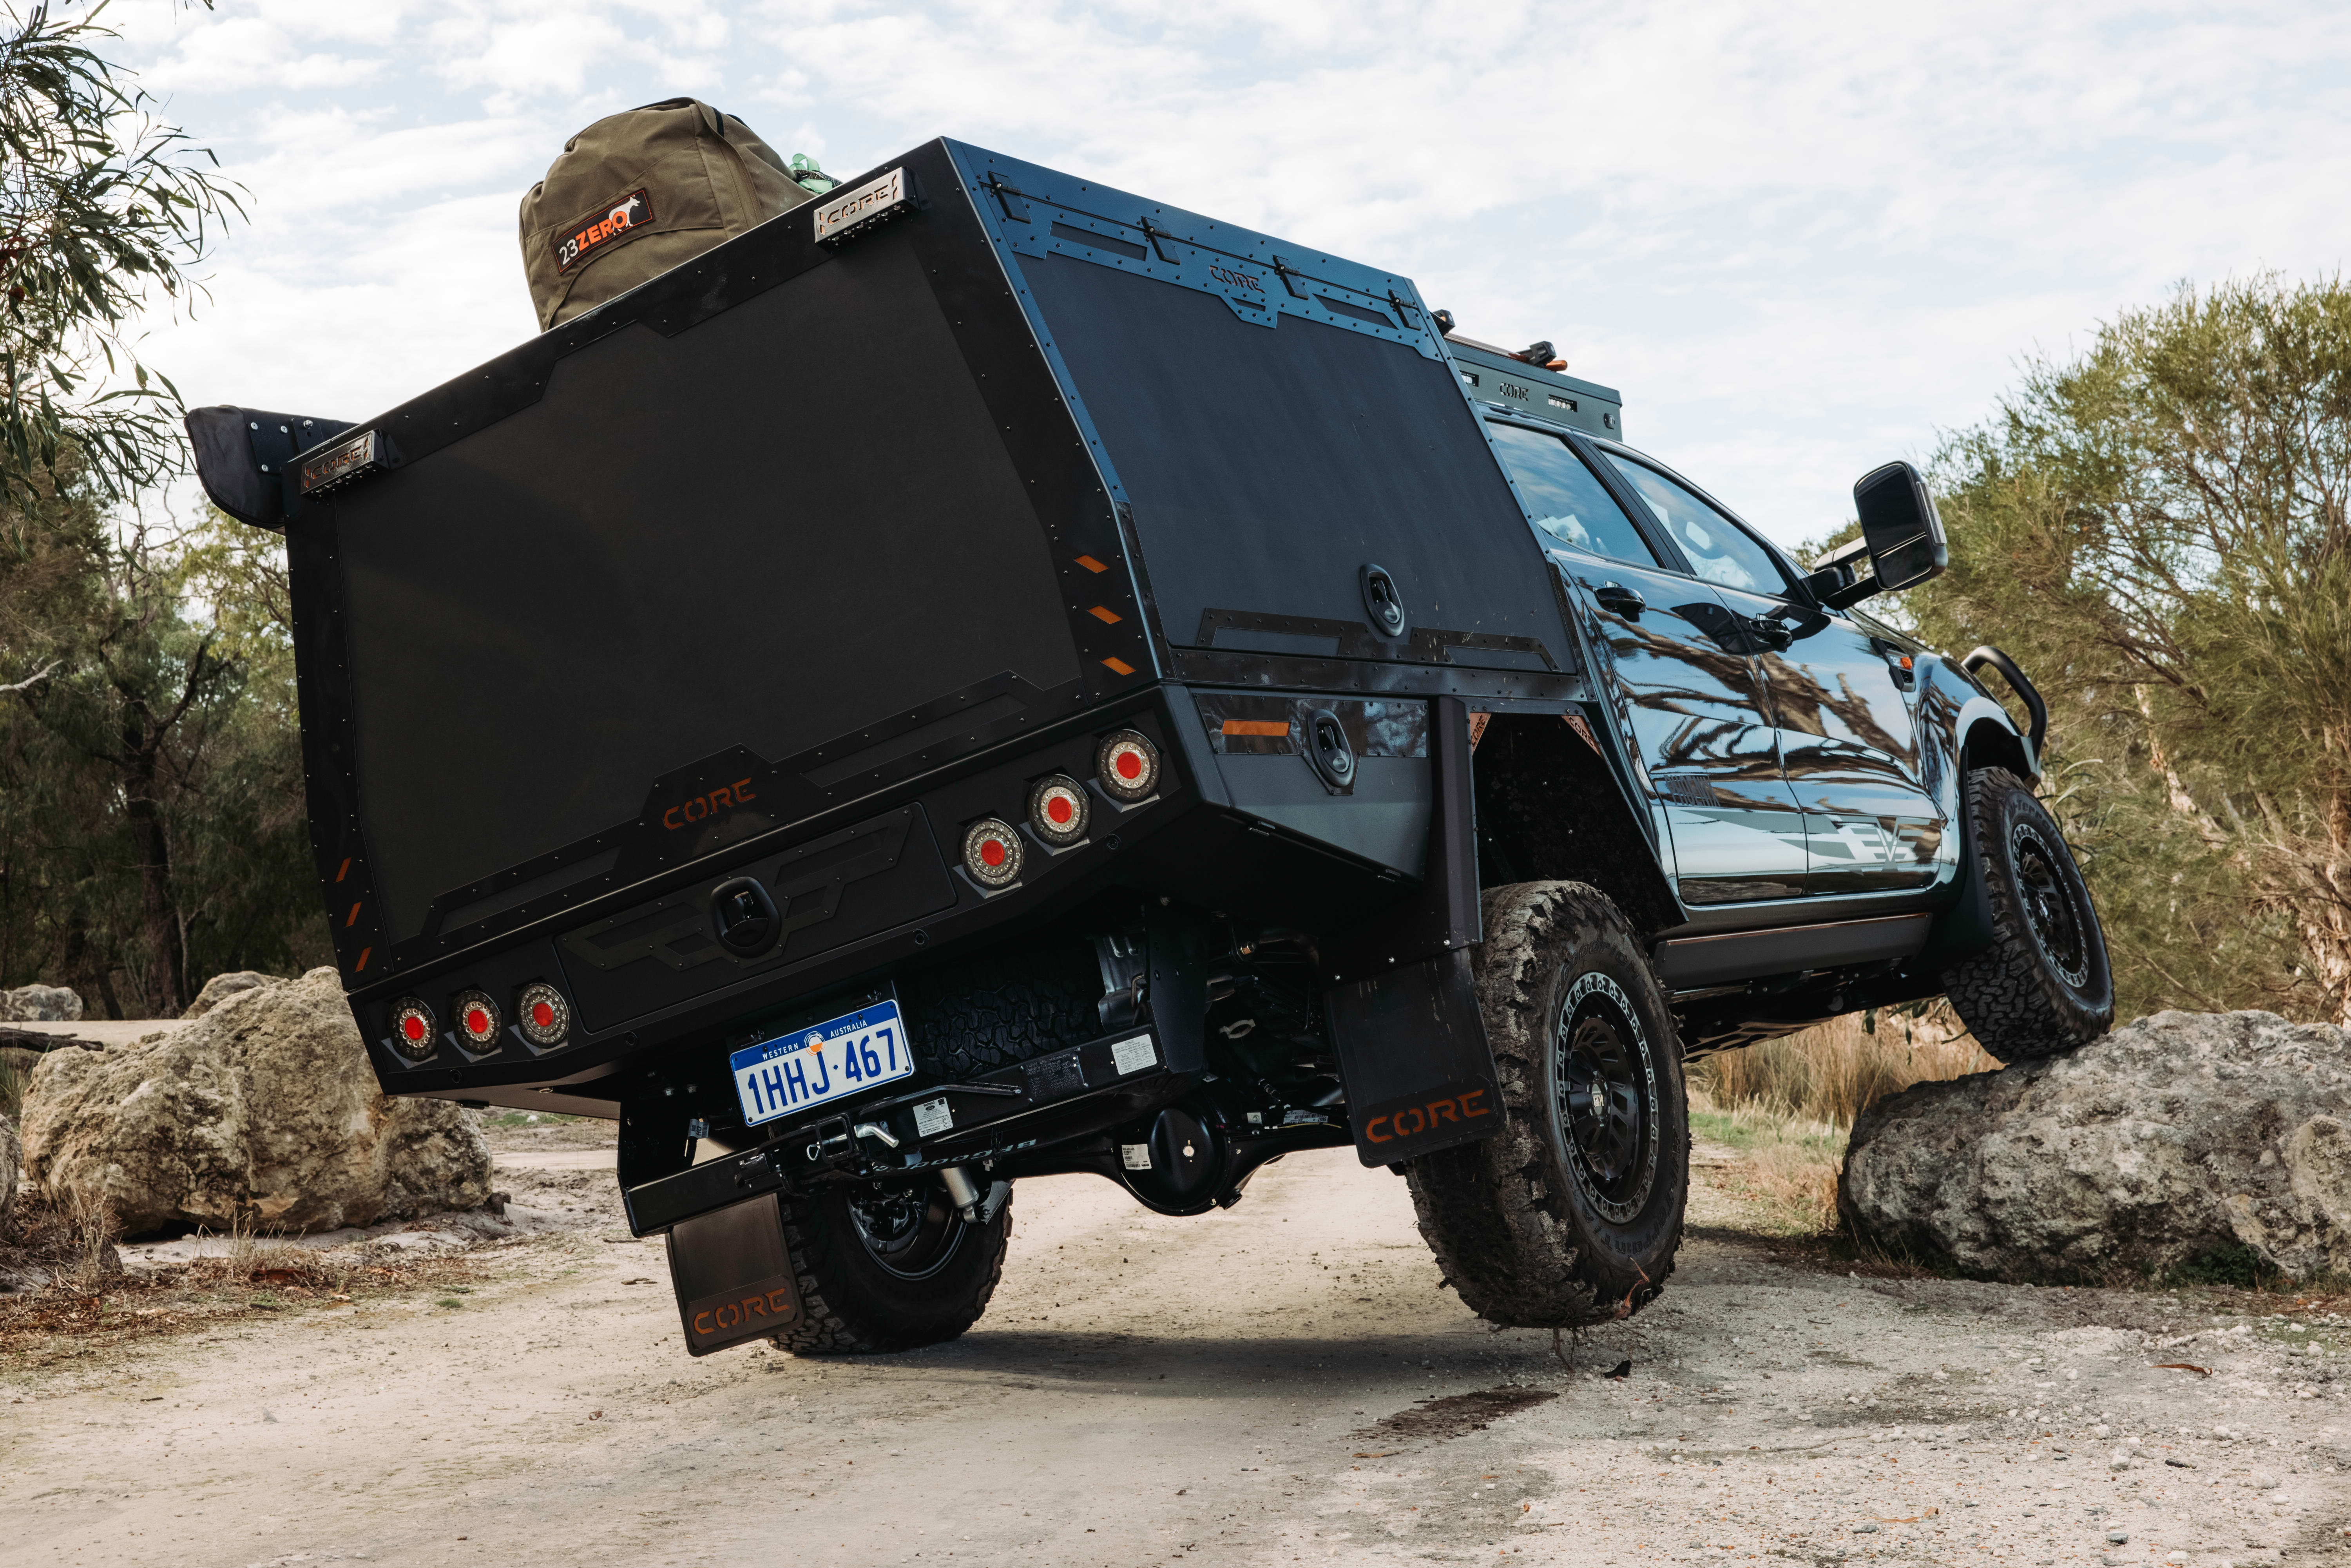 4 X 4 Australia Reviews 2021 August 2021 Core Offroad Ford Ranger 8